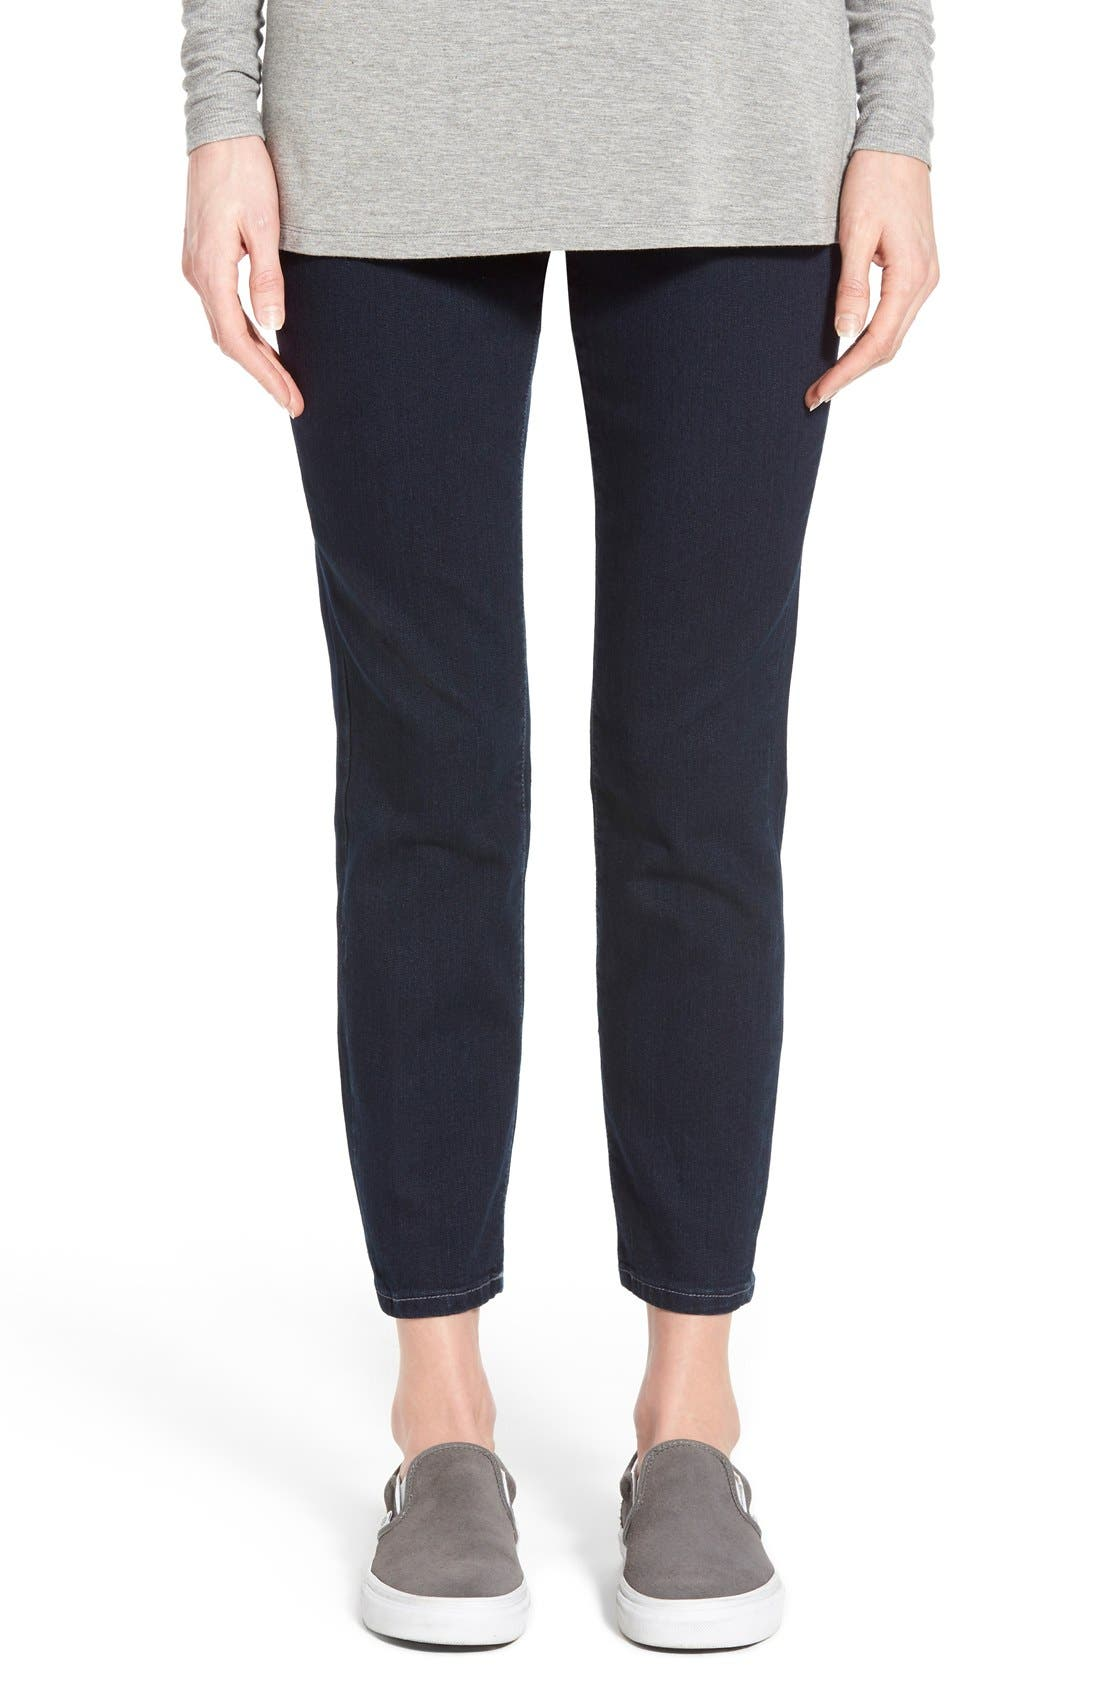 Alternate Image 1 Selected - Jag Jeans 'Amelia' Pull-On Slim Ankle Jeans (Indigo) (Petite)